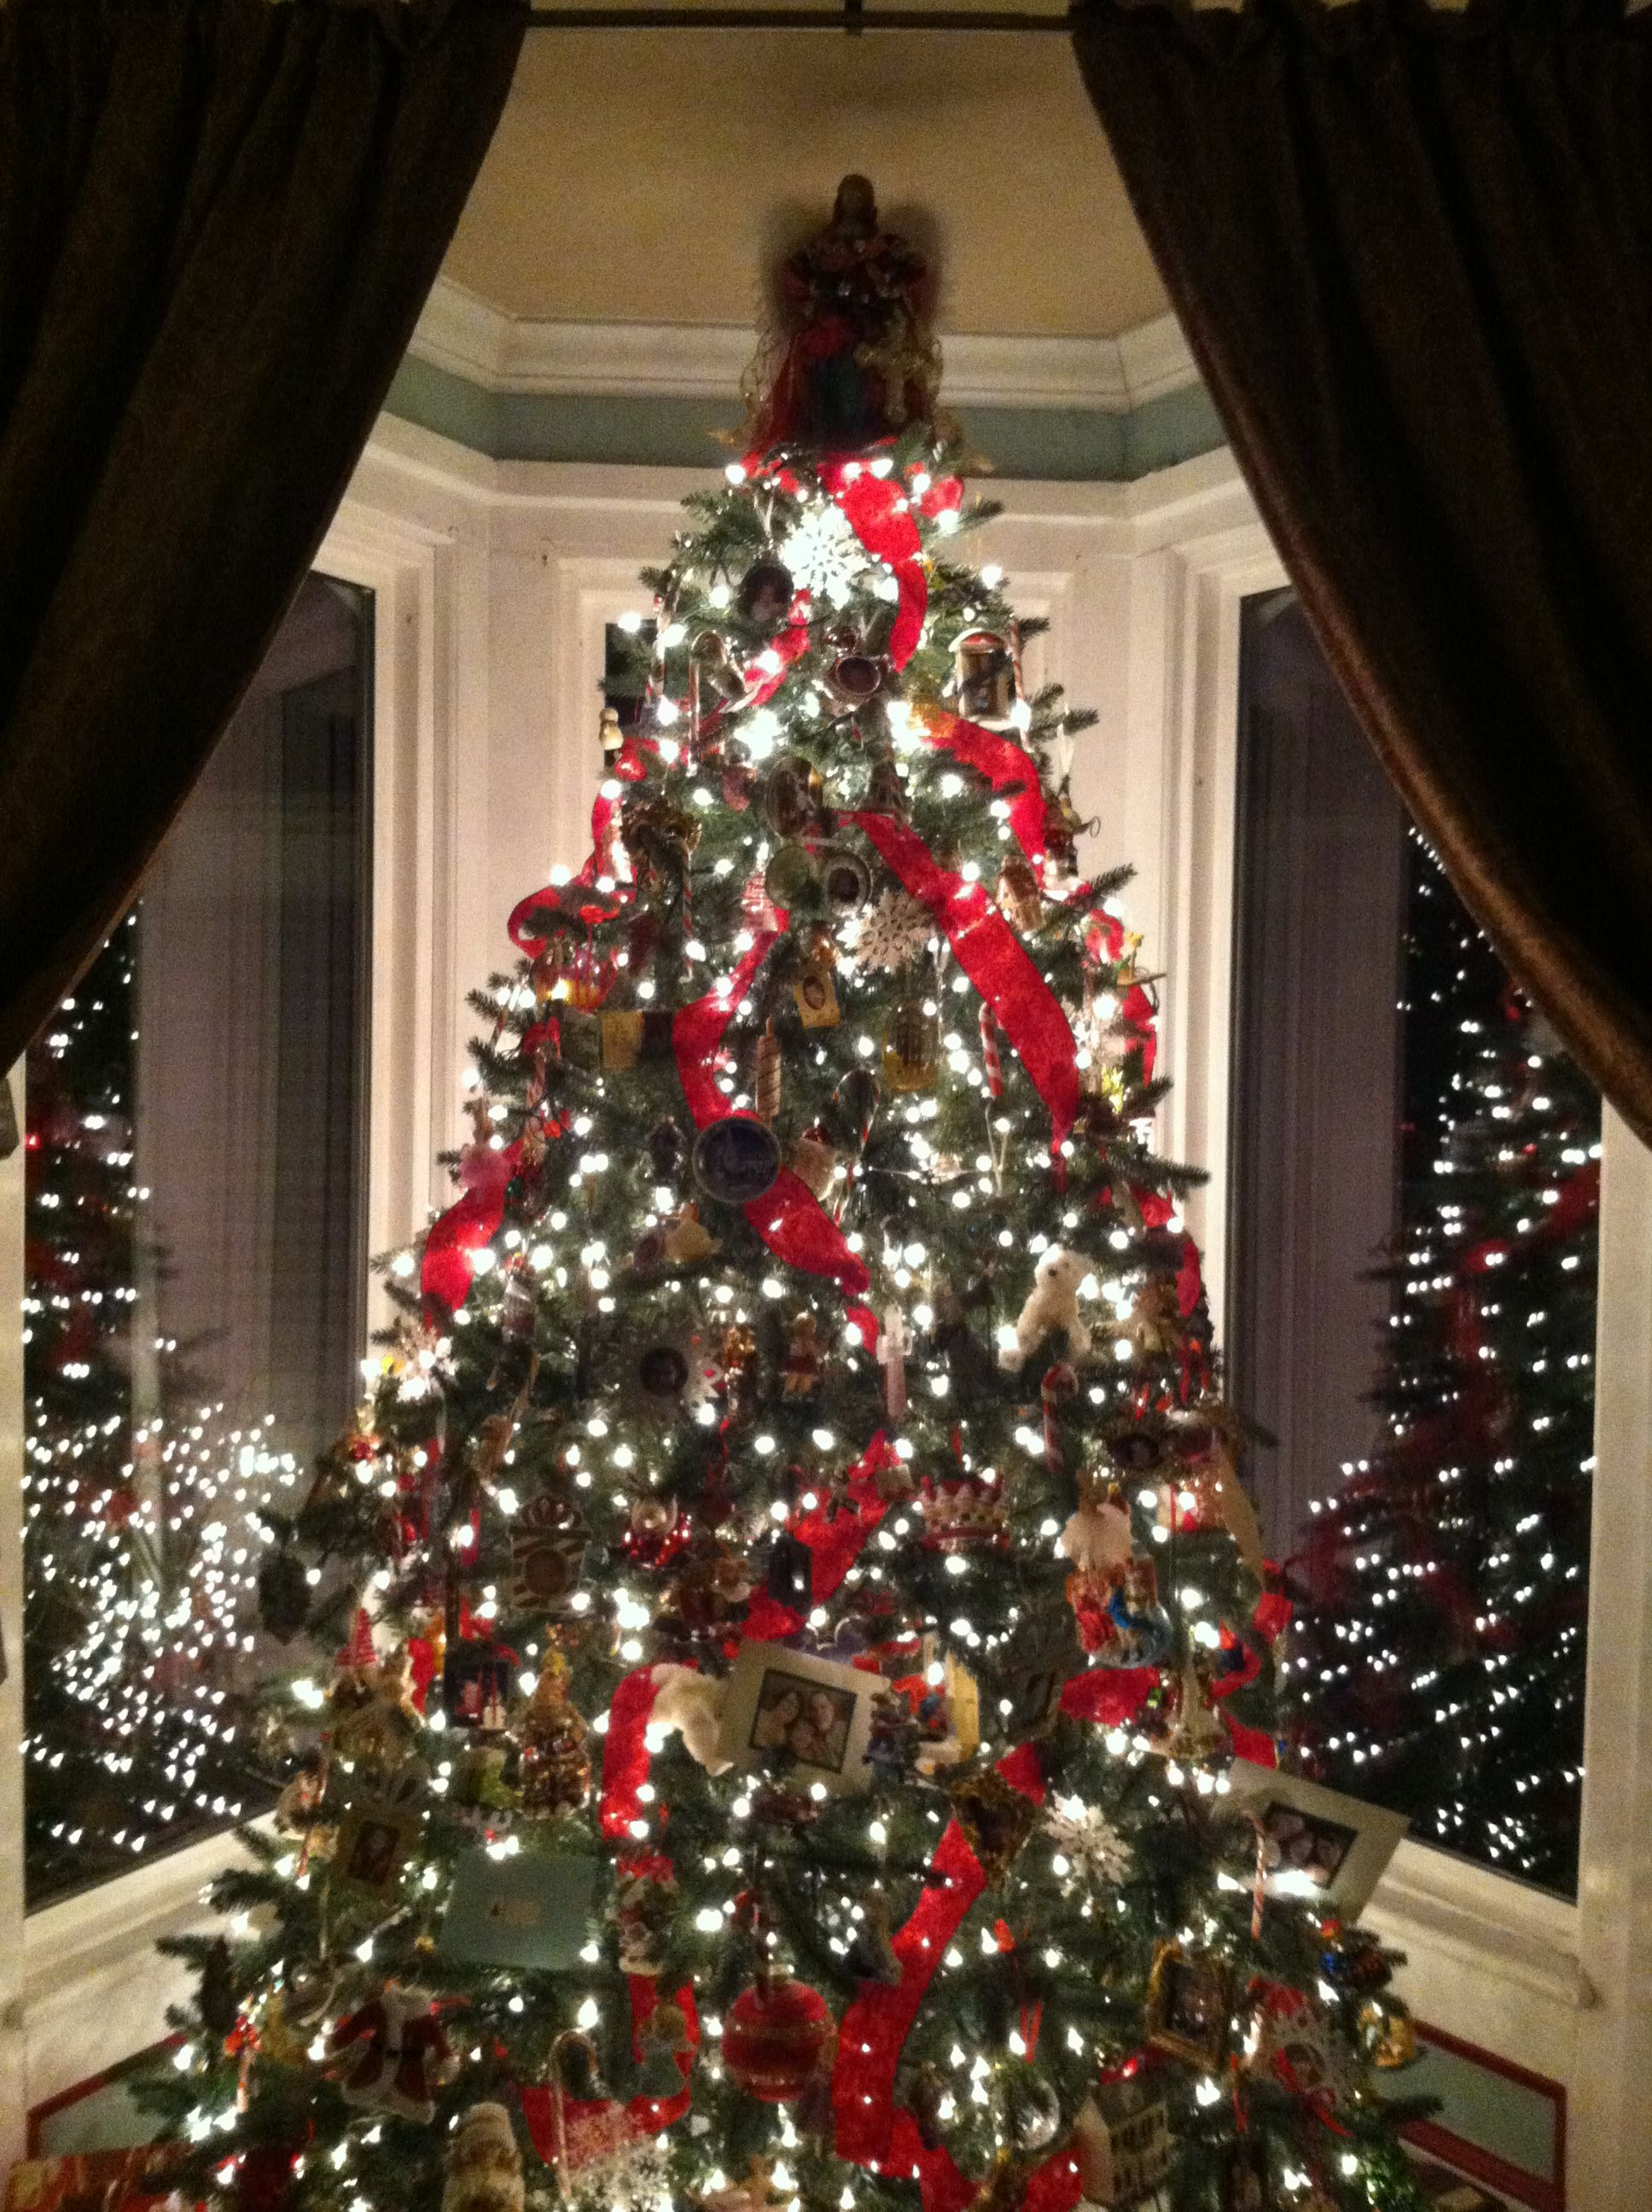 Christmas Tree W Velvet Ribbons Collected Ornaments And White